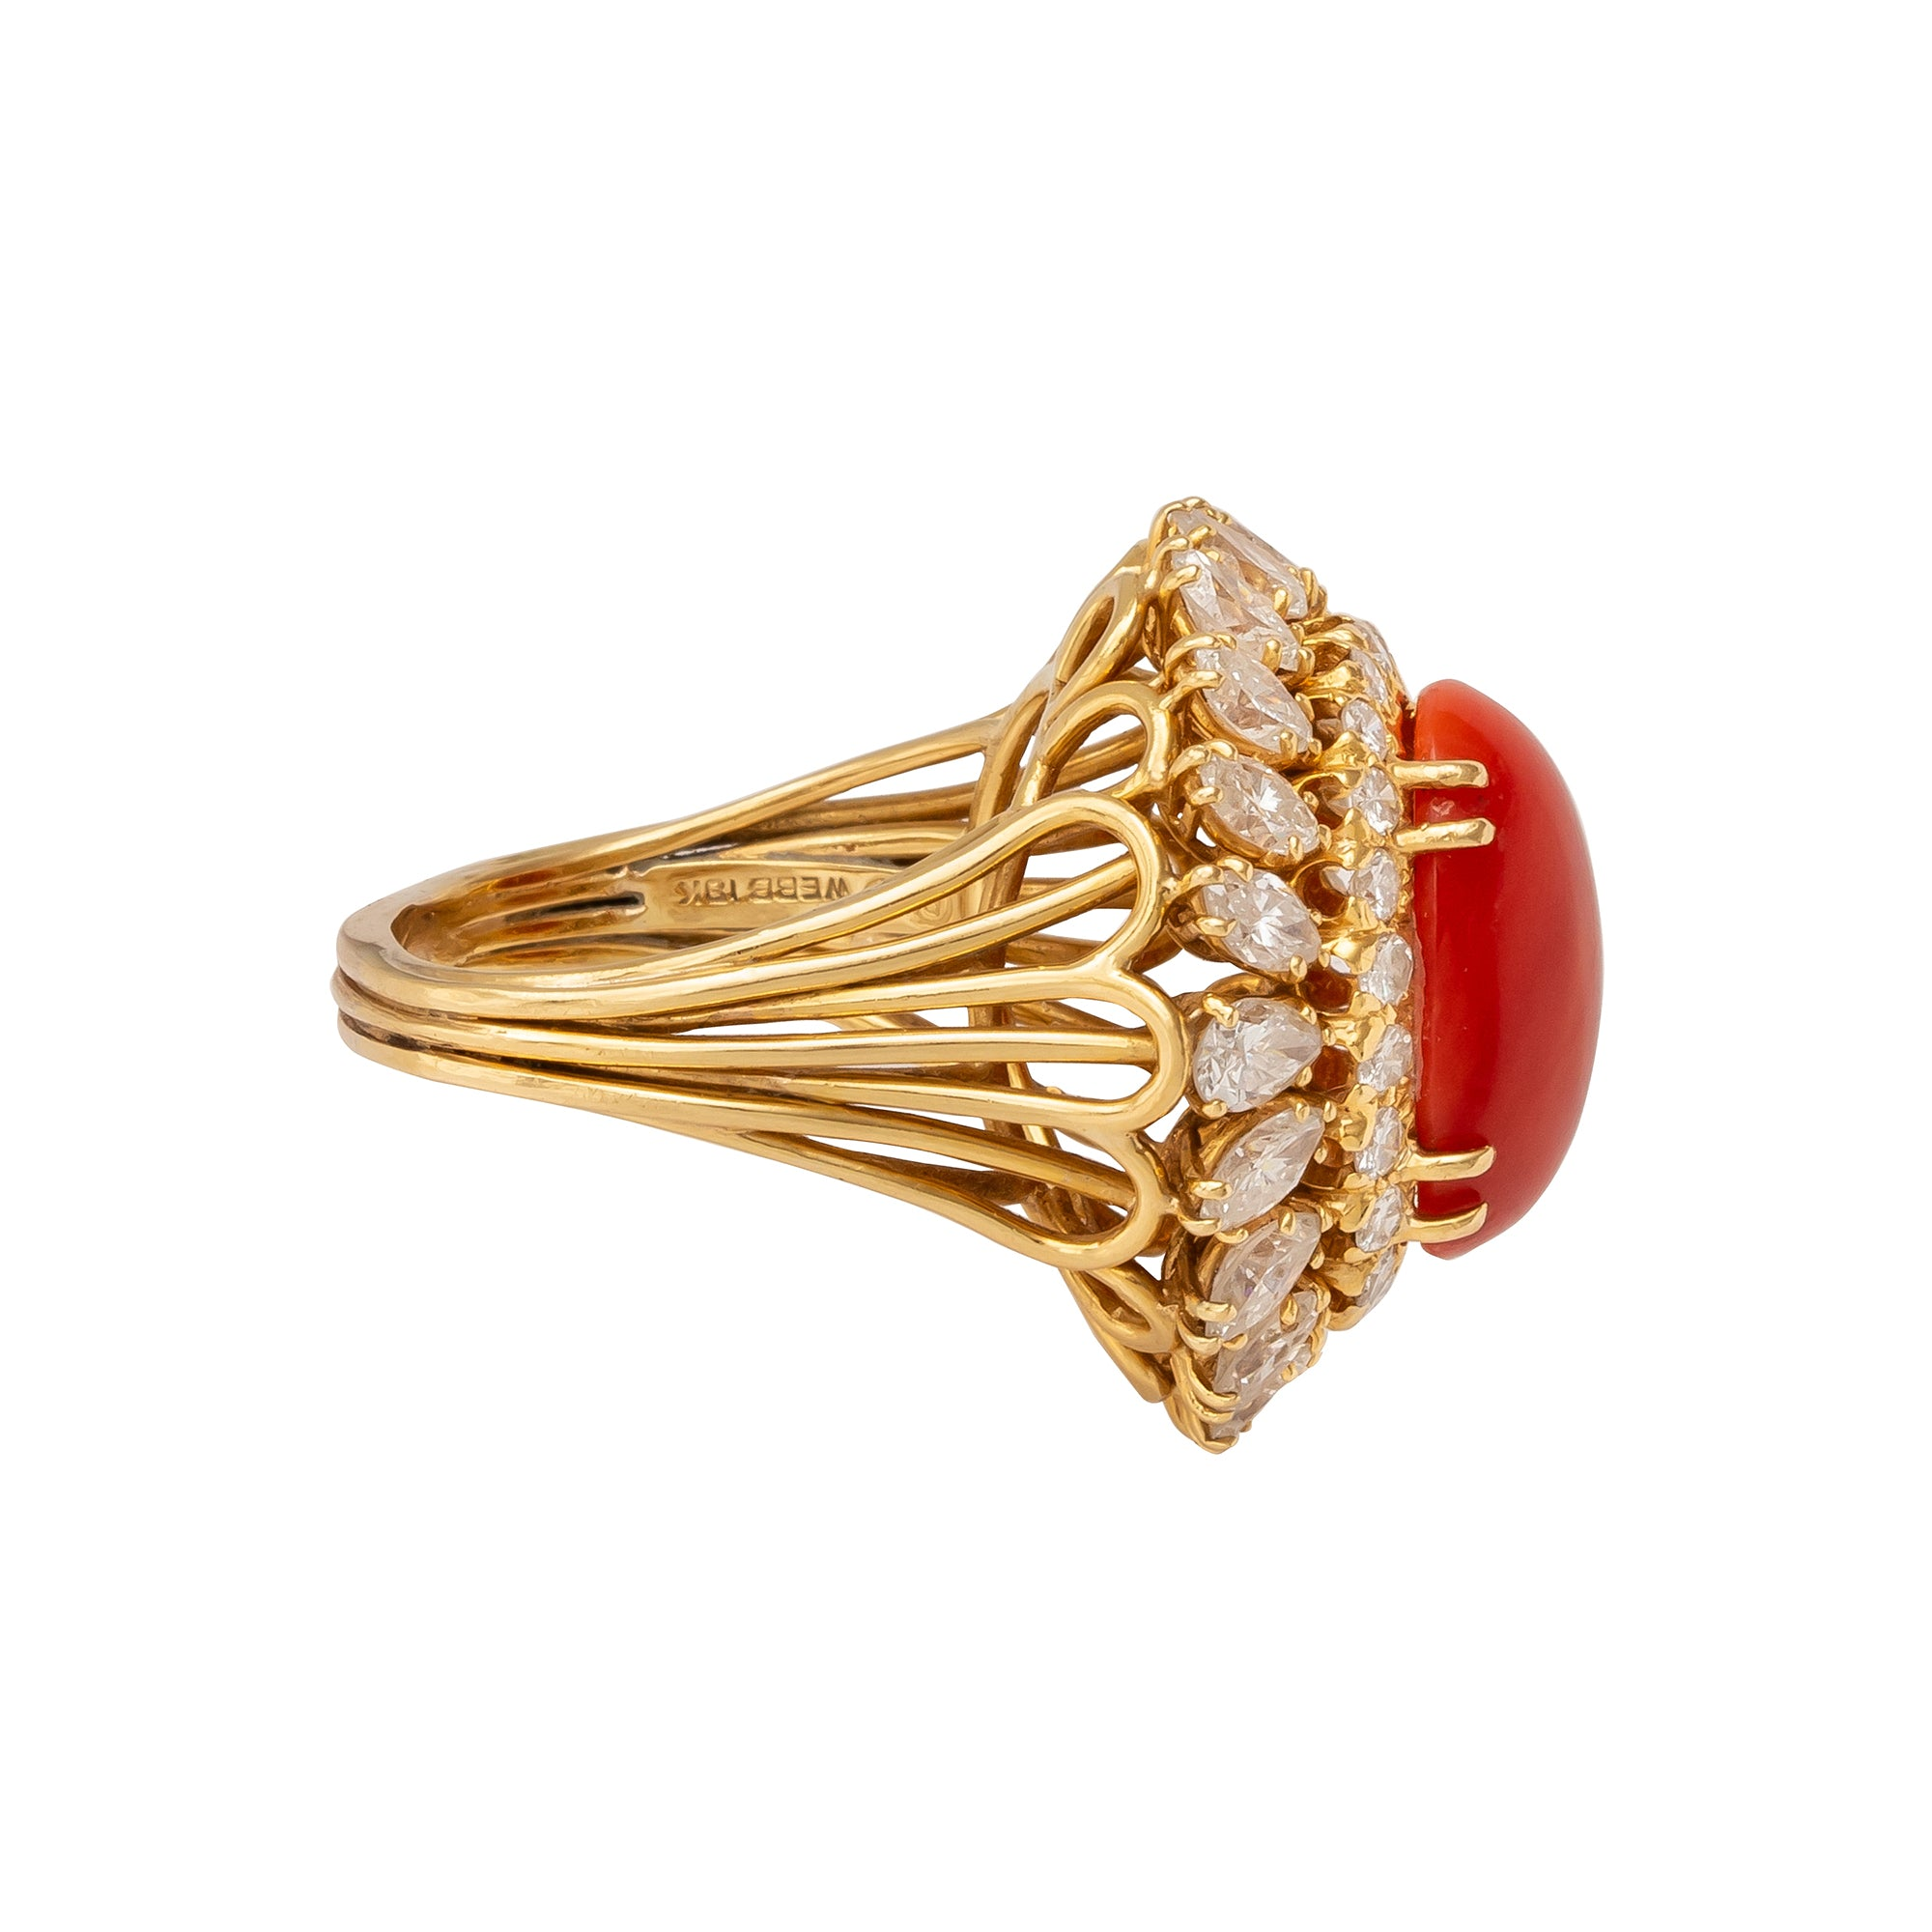 Antique & Vintage Jewelry Vintage Coral & Diamond Ring - David Webb - Rings - Broken English Jewelry